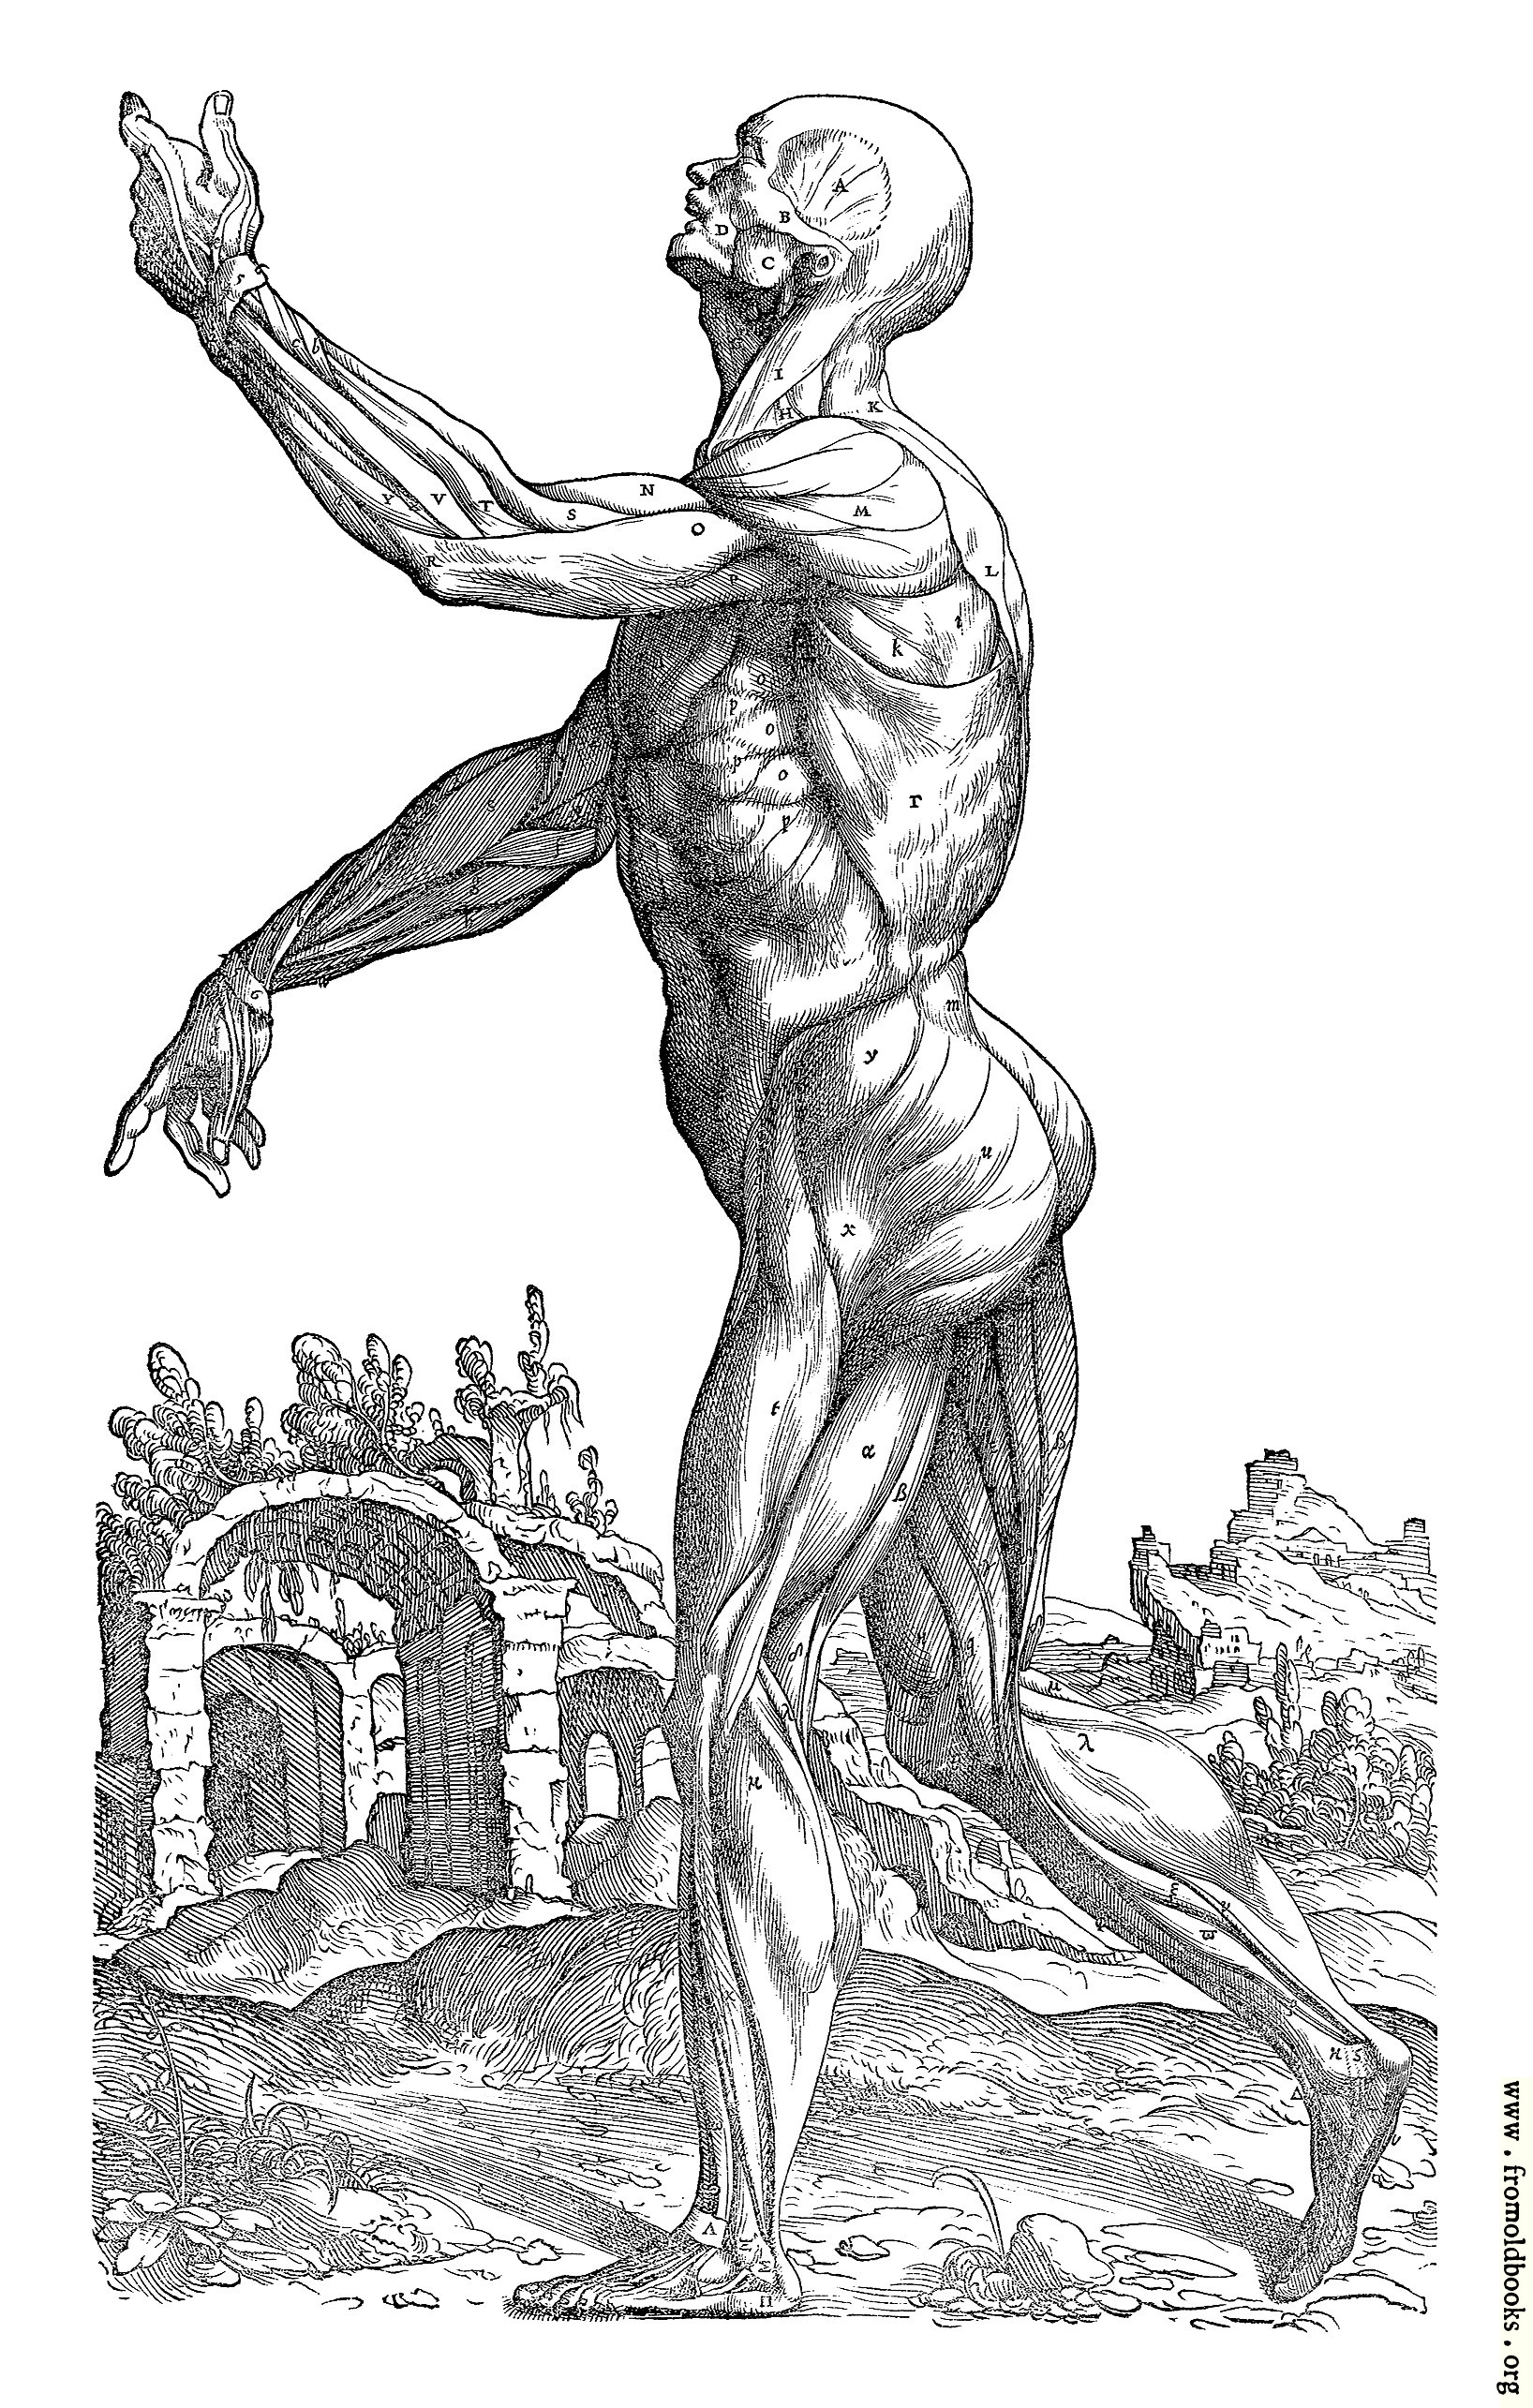 [Picture: 174. Muscle Men, Table II]